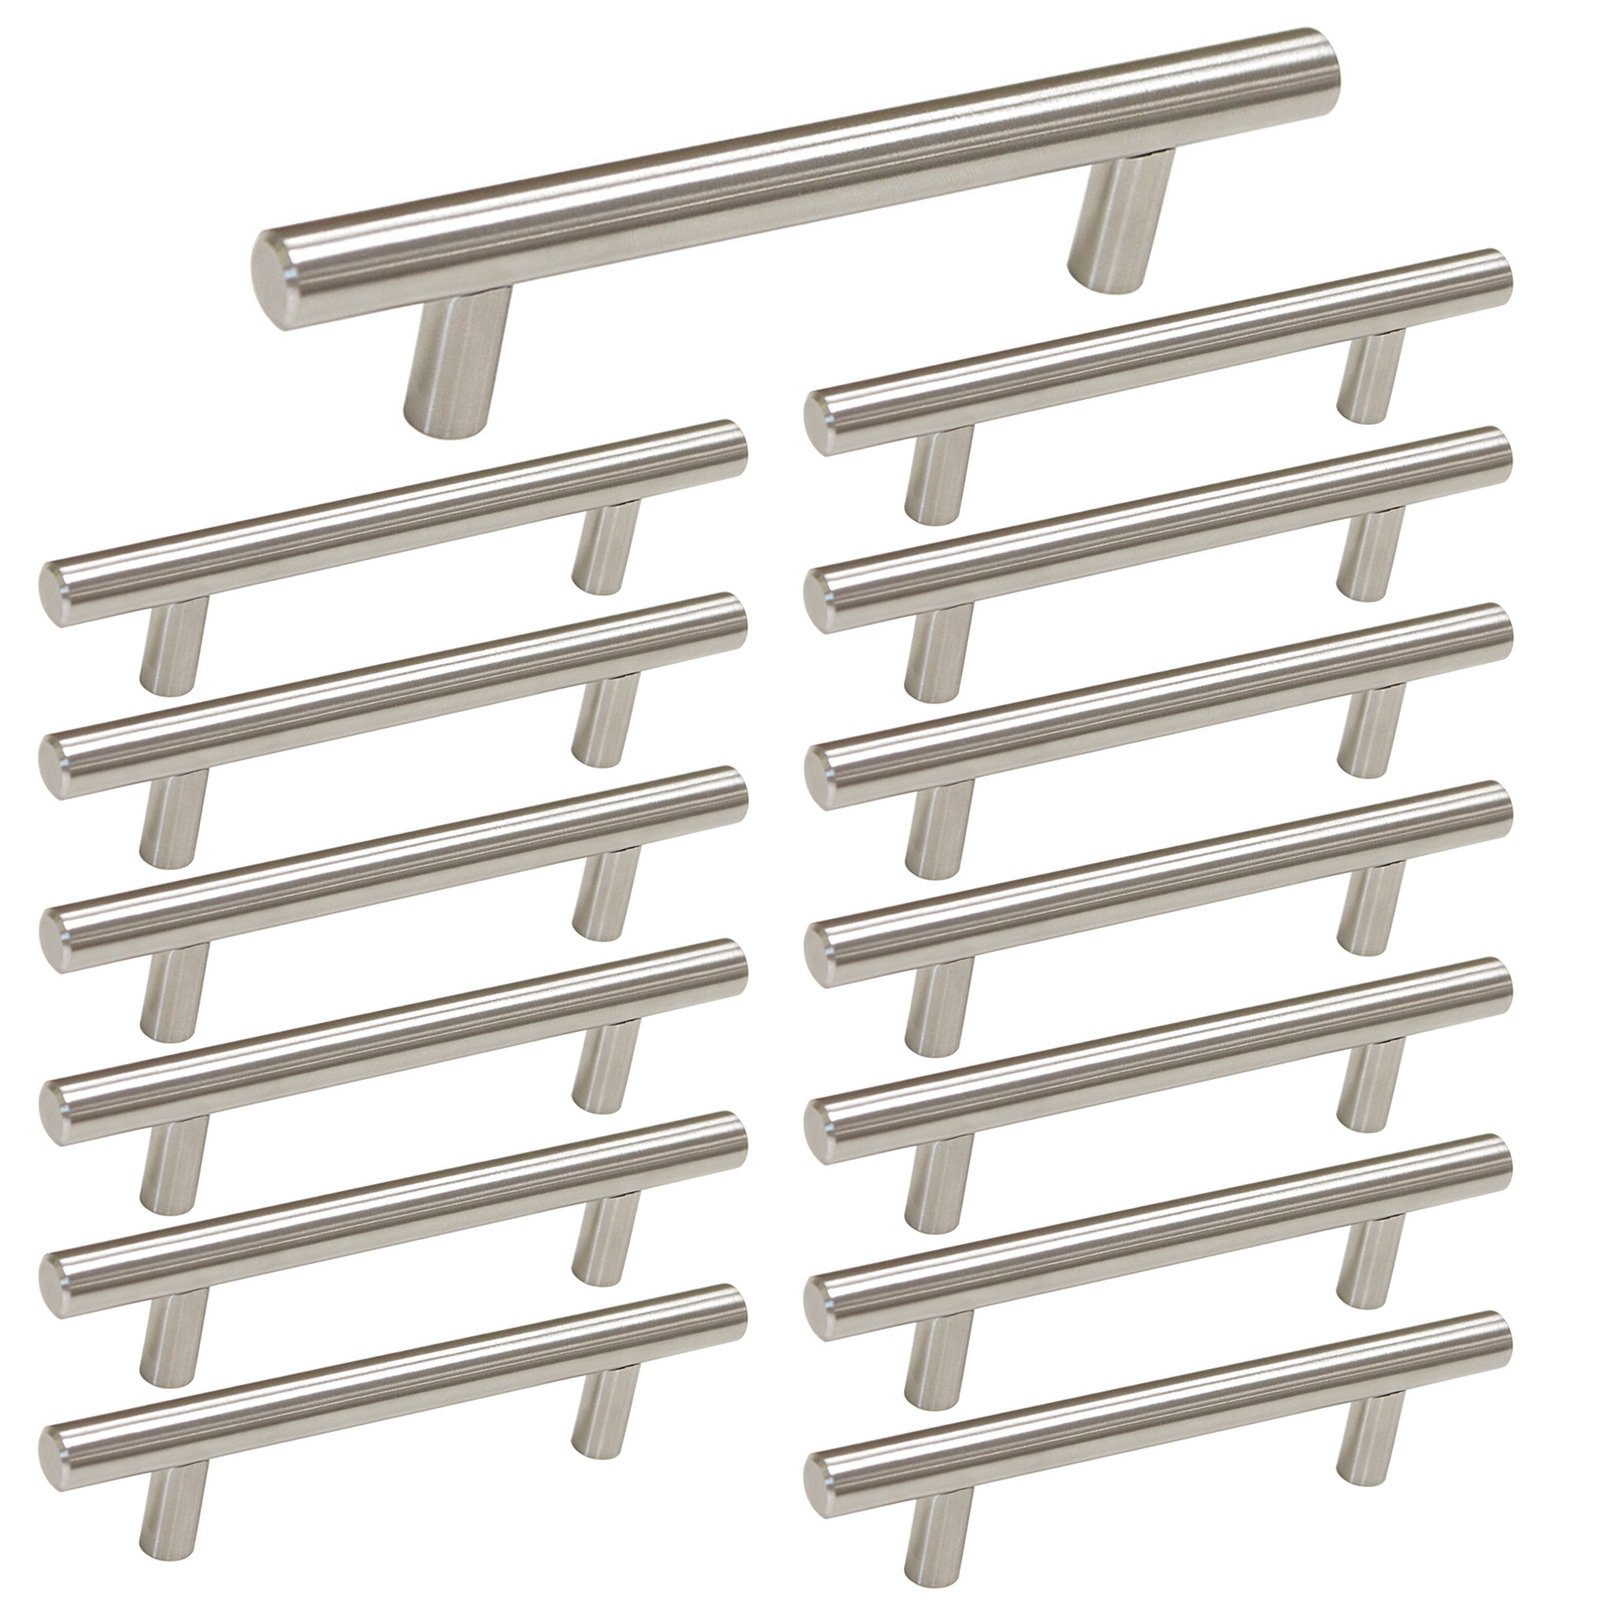 3 5 Inch Drawer Pulls Brushed Nickel 15 Pack Cabinet Handles 3 1 2in 90mm Center Ebay